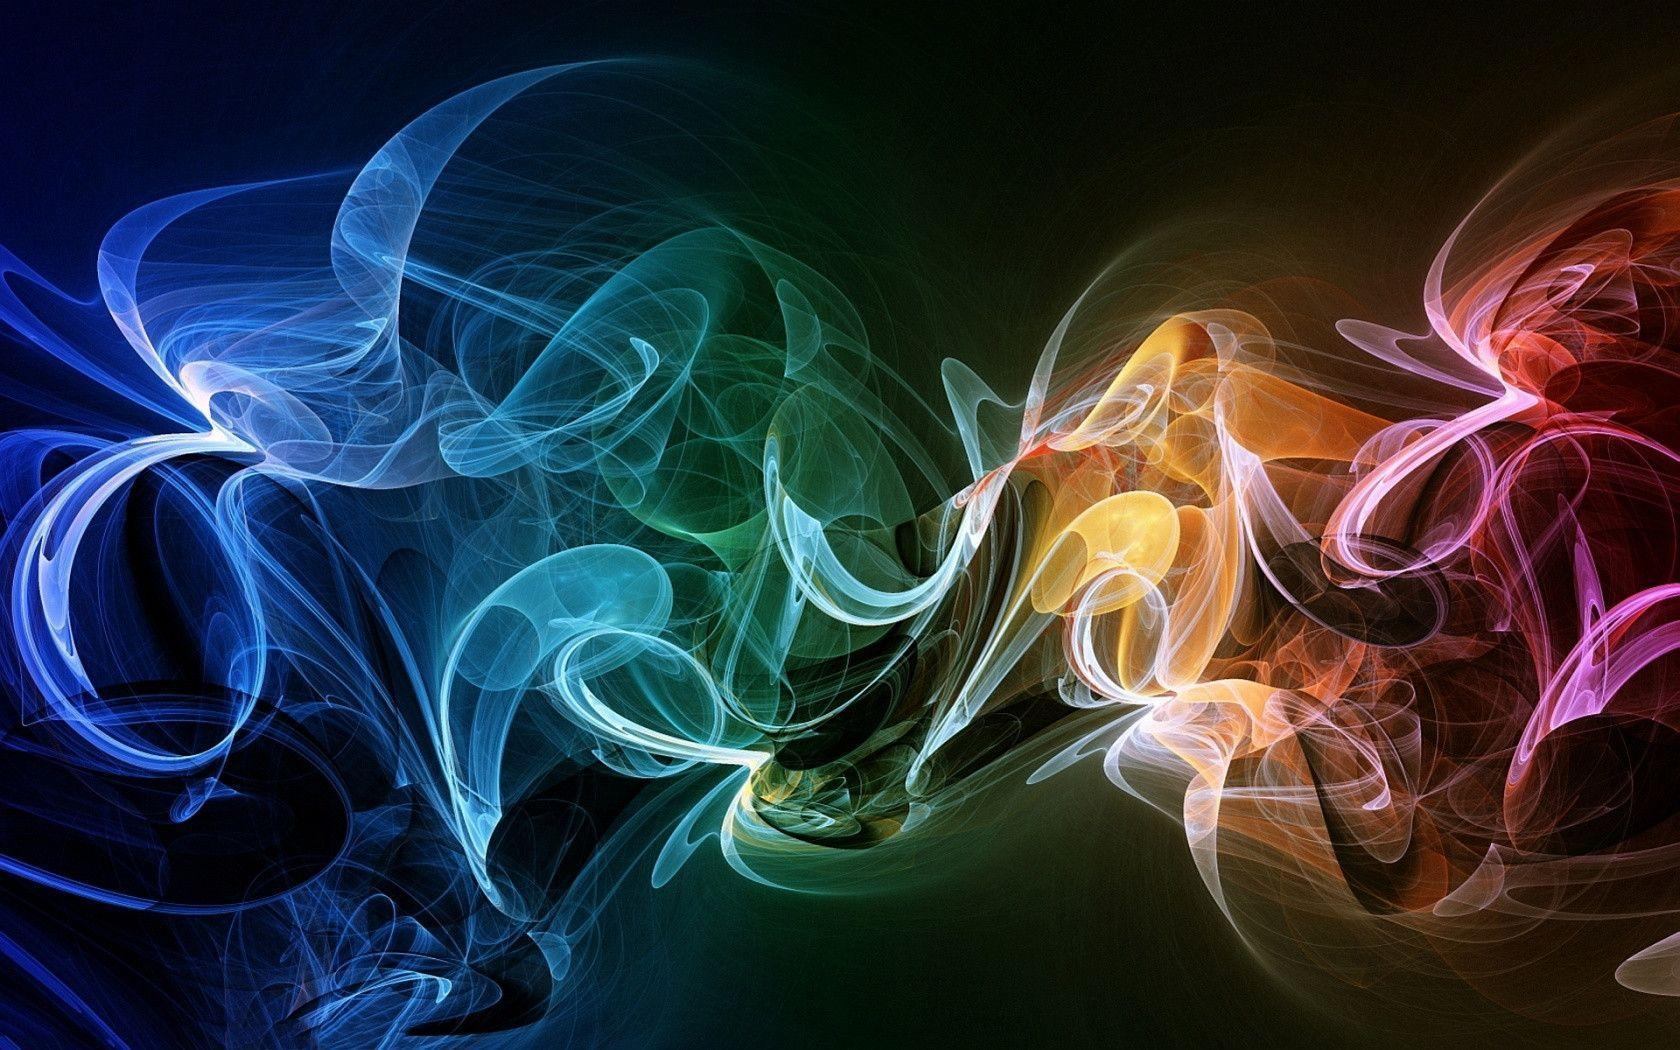 Violet Smoke Art Wallpapers: Colored Smoke Wallpapers